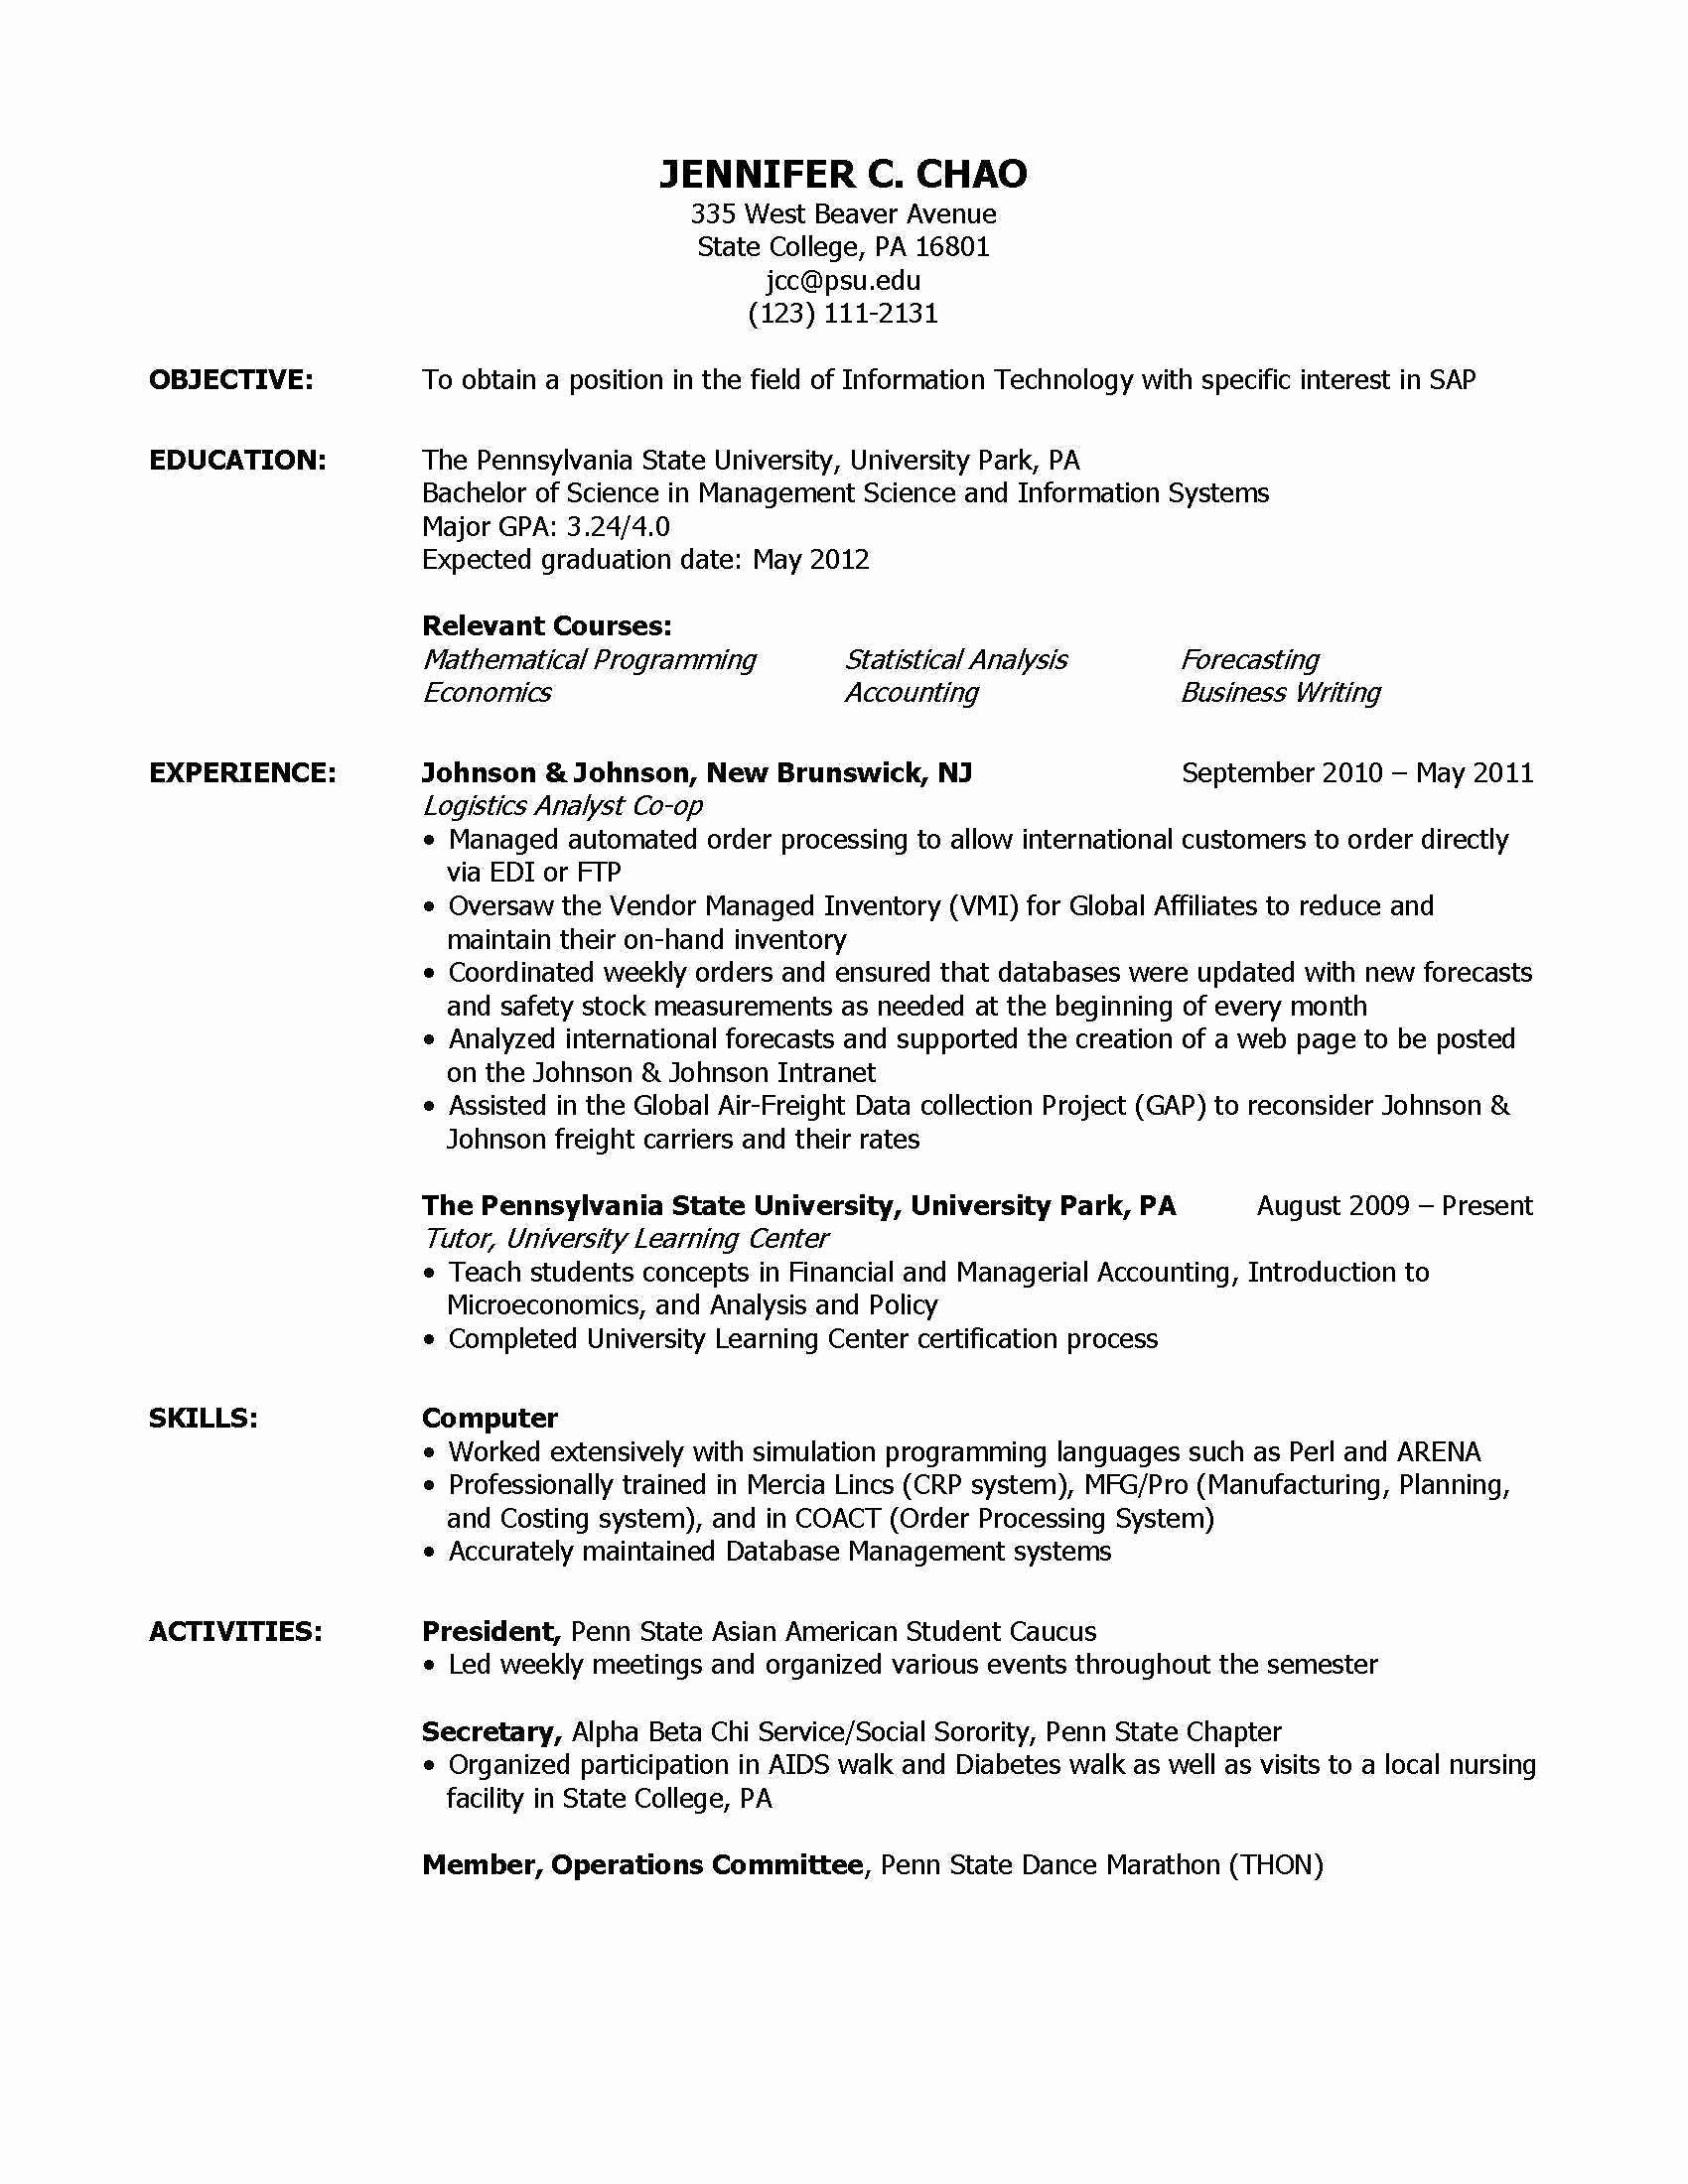 How to Add Volunteer Work Resume Resume Ideas What to Add